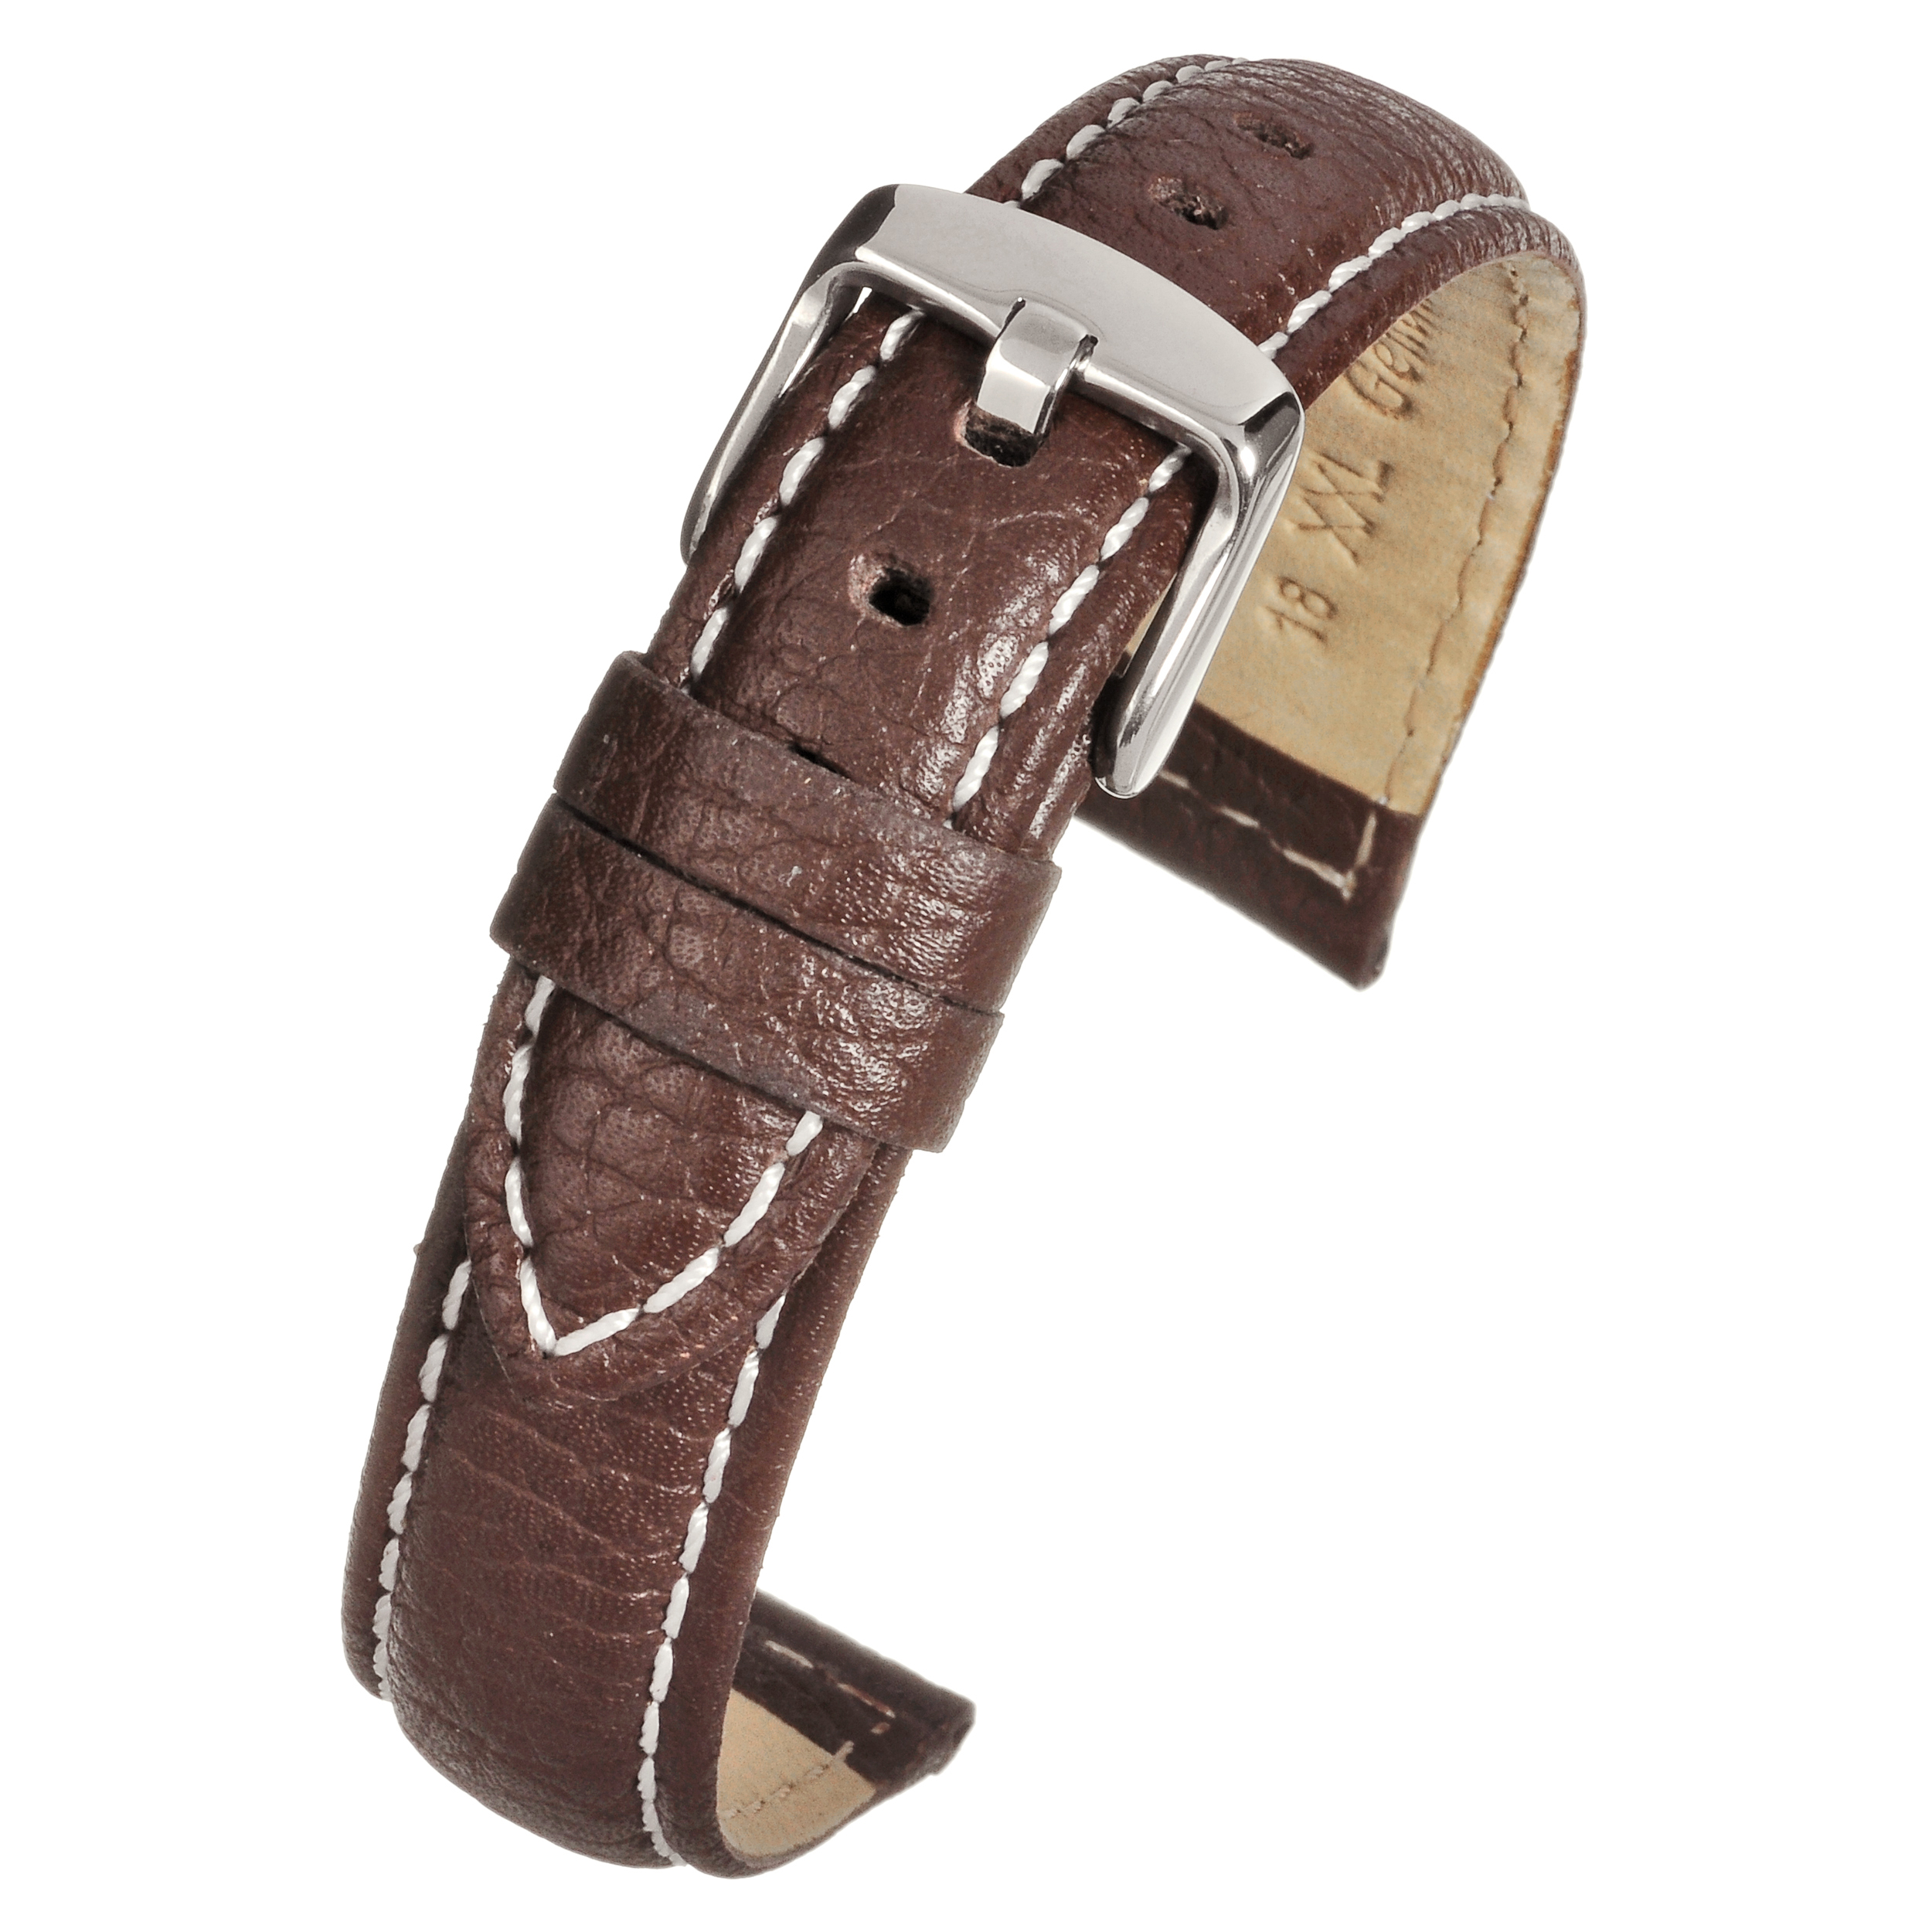 XXL Heavy Watch Strap Brown